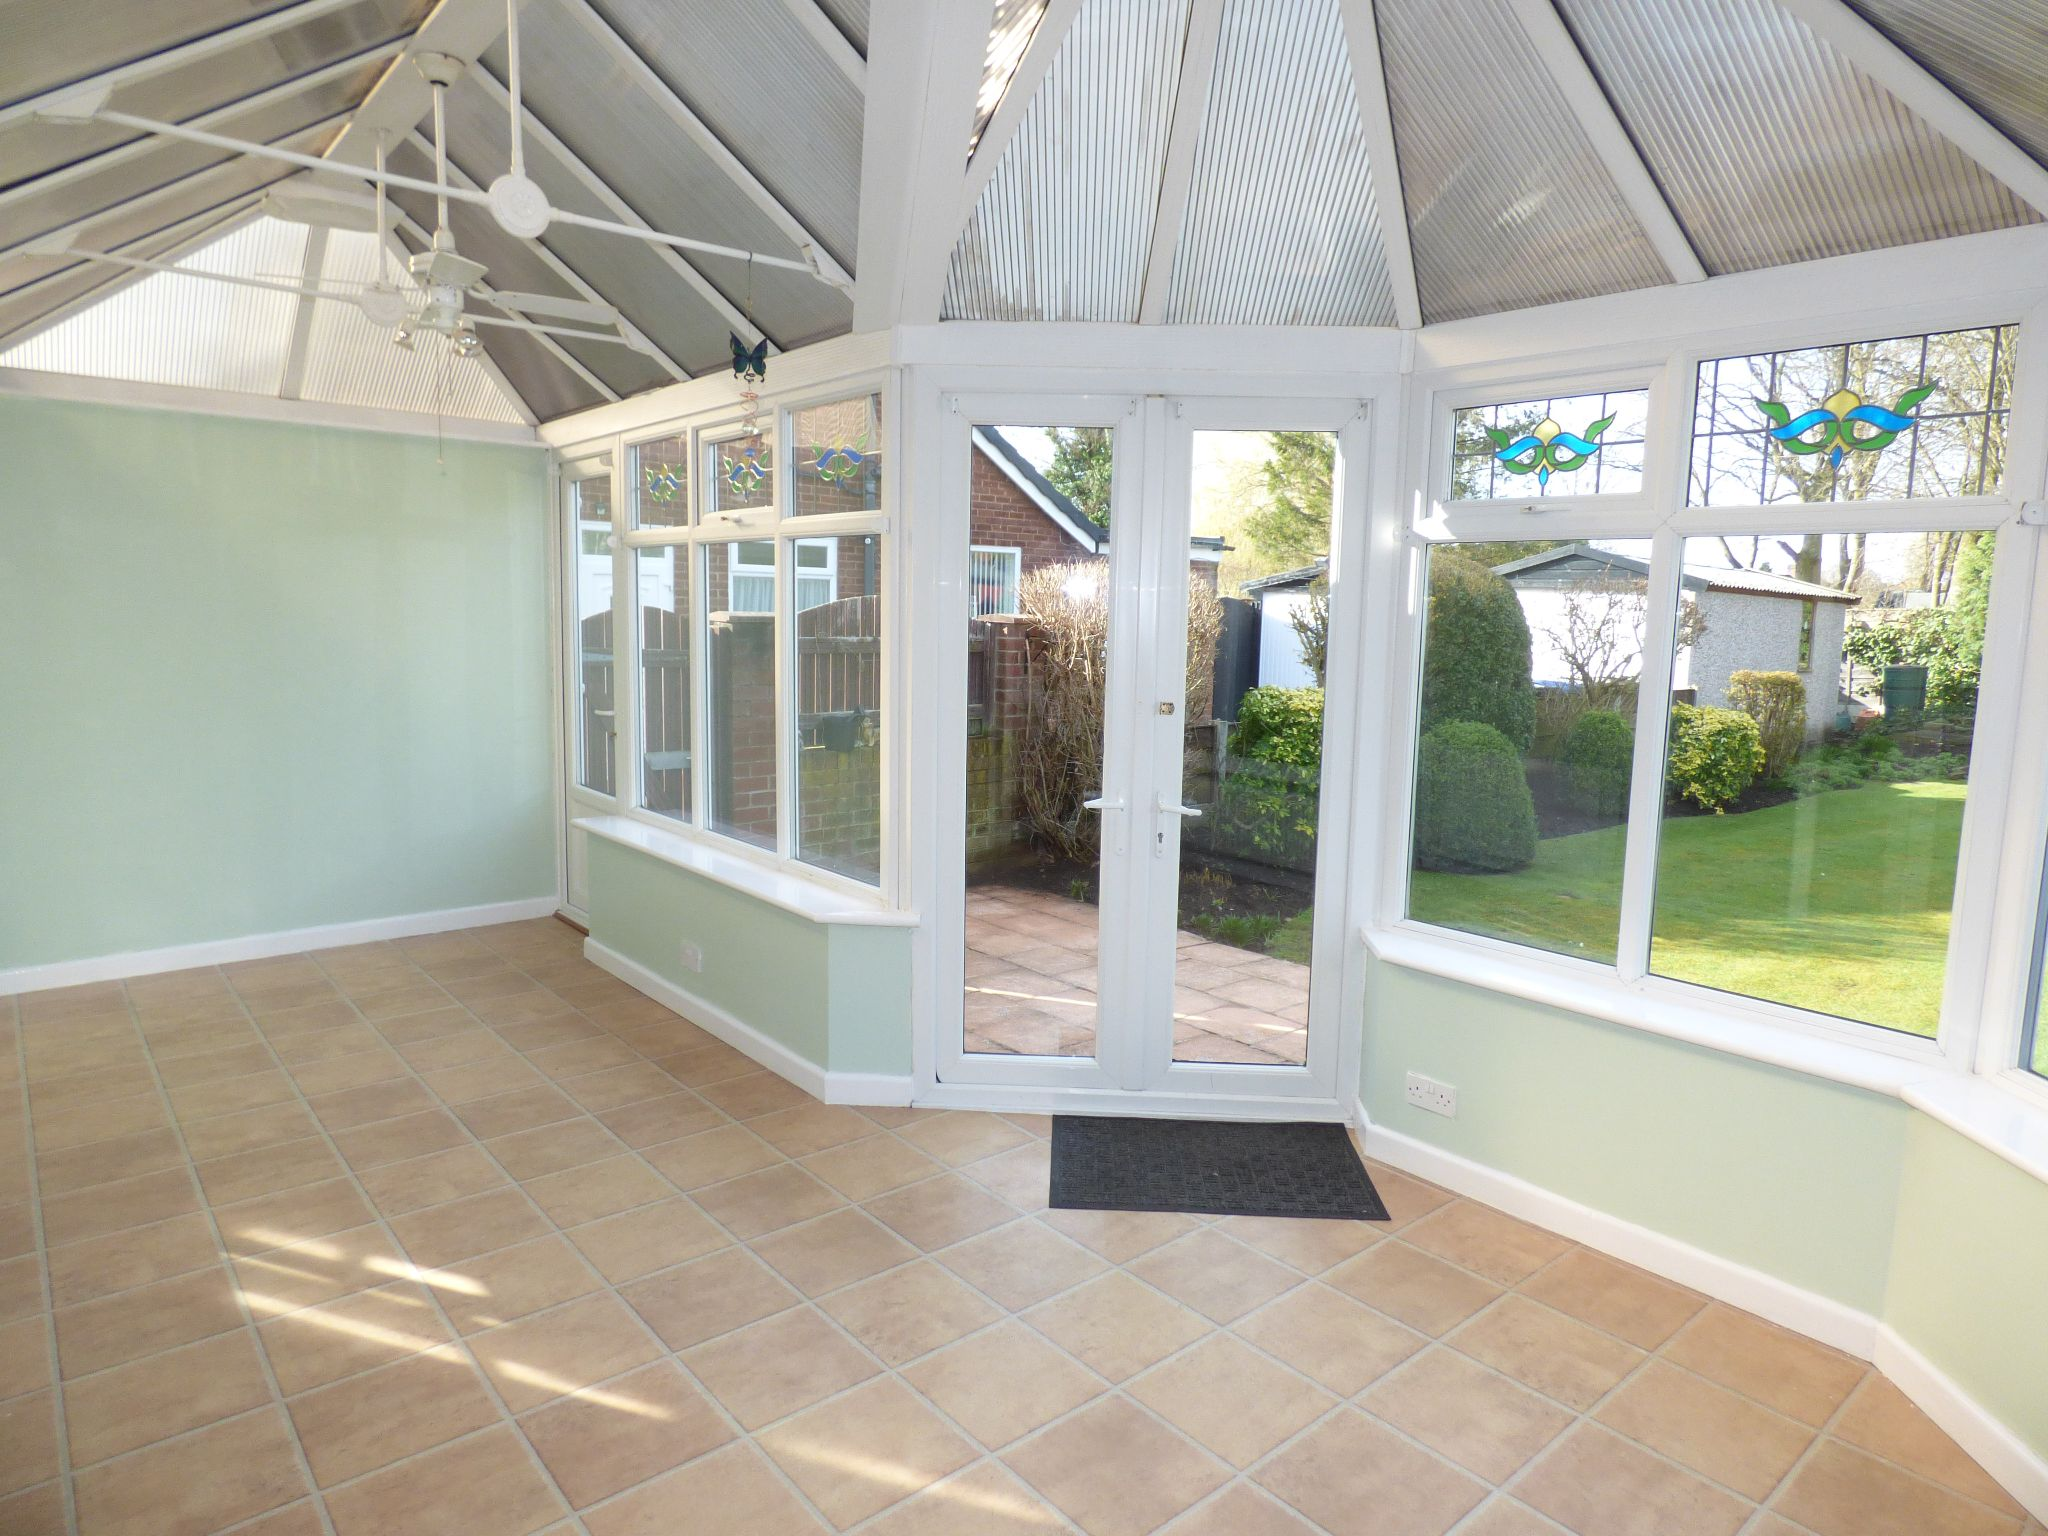 3 Bedroom Semi-detached Bungalow For Sale - Photograph 16